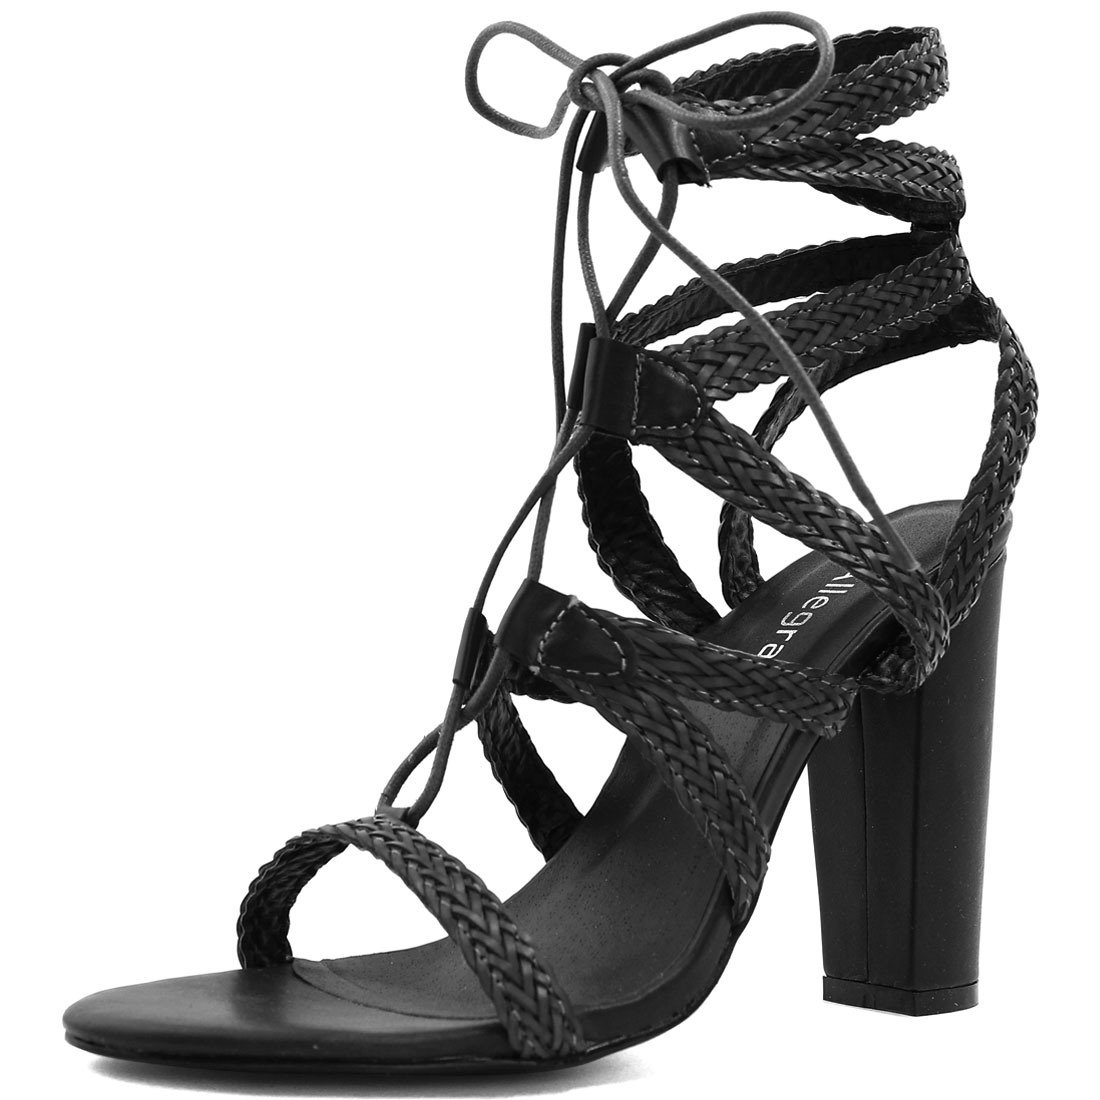 Woman Chunky Heel Braided Strappy Lace-Up Sandals Black US 7.5